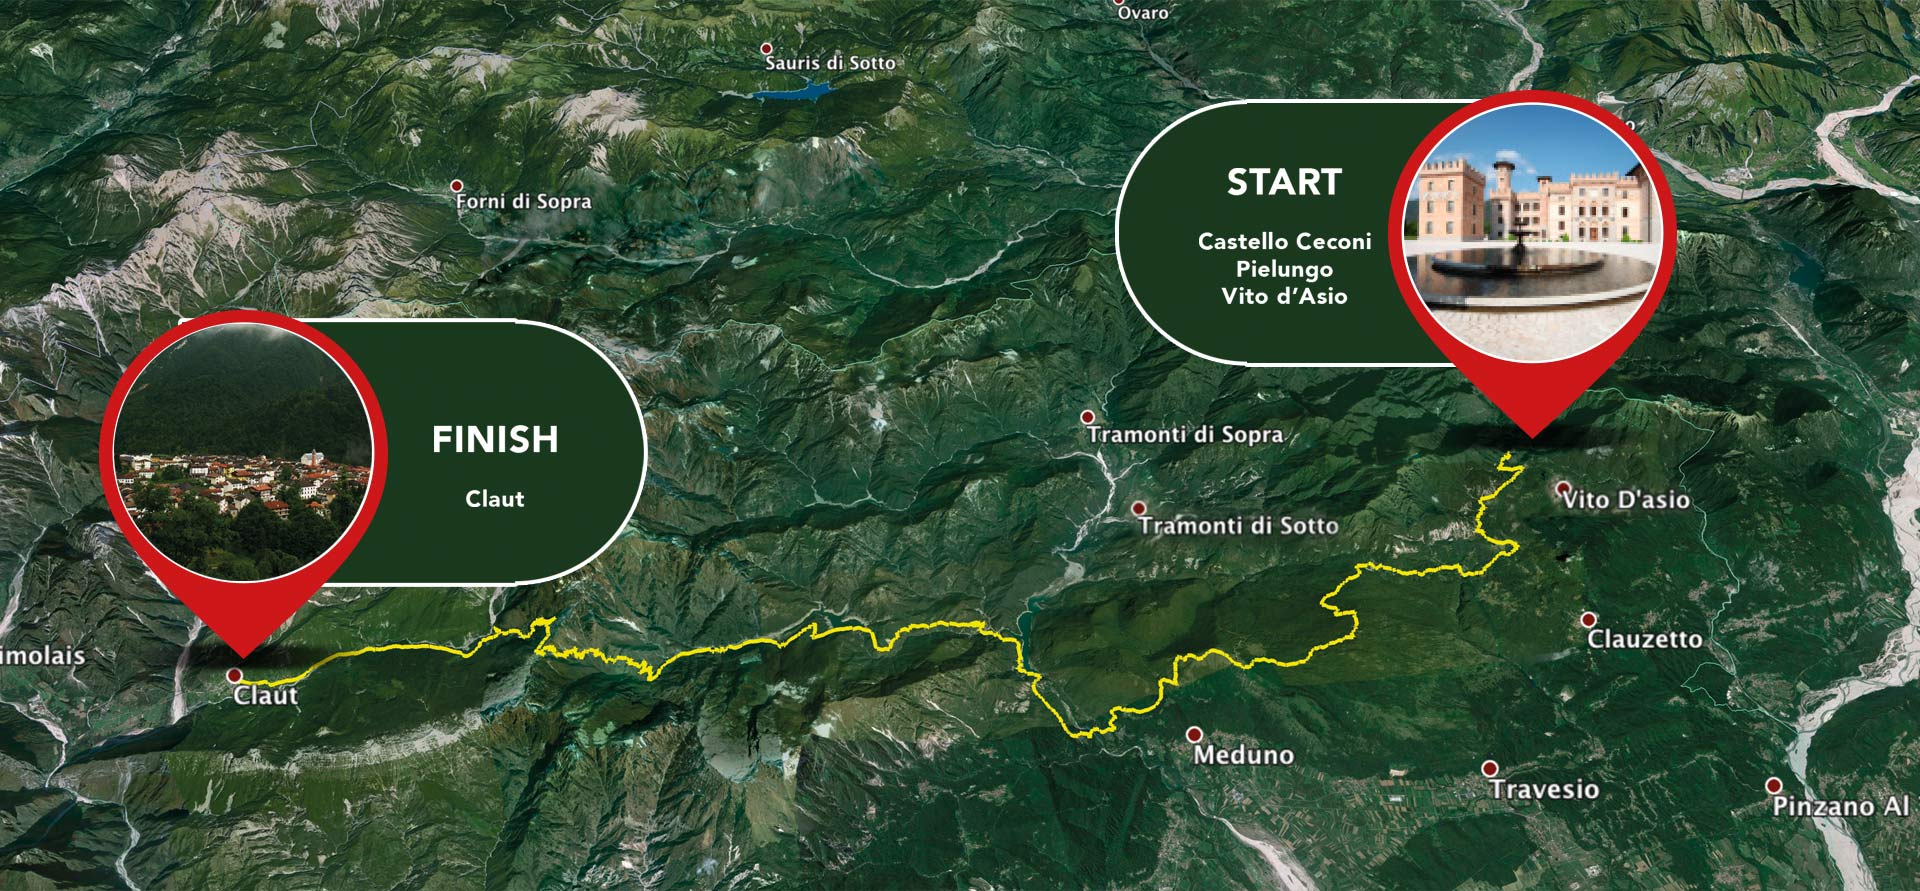 START: Castello Ceconi, Pielungo, Vito d'Asio - FINISH: Claut